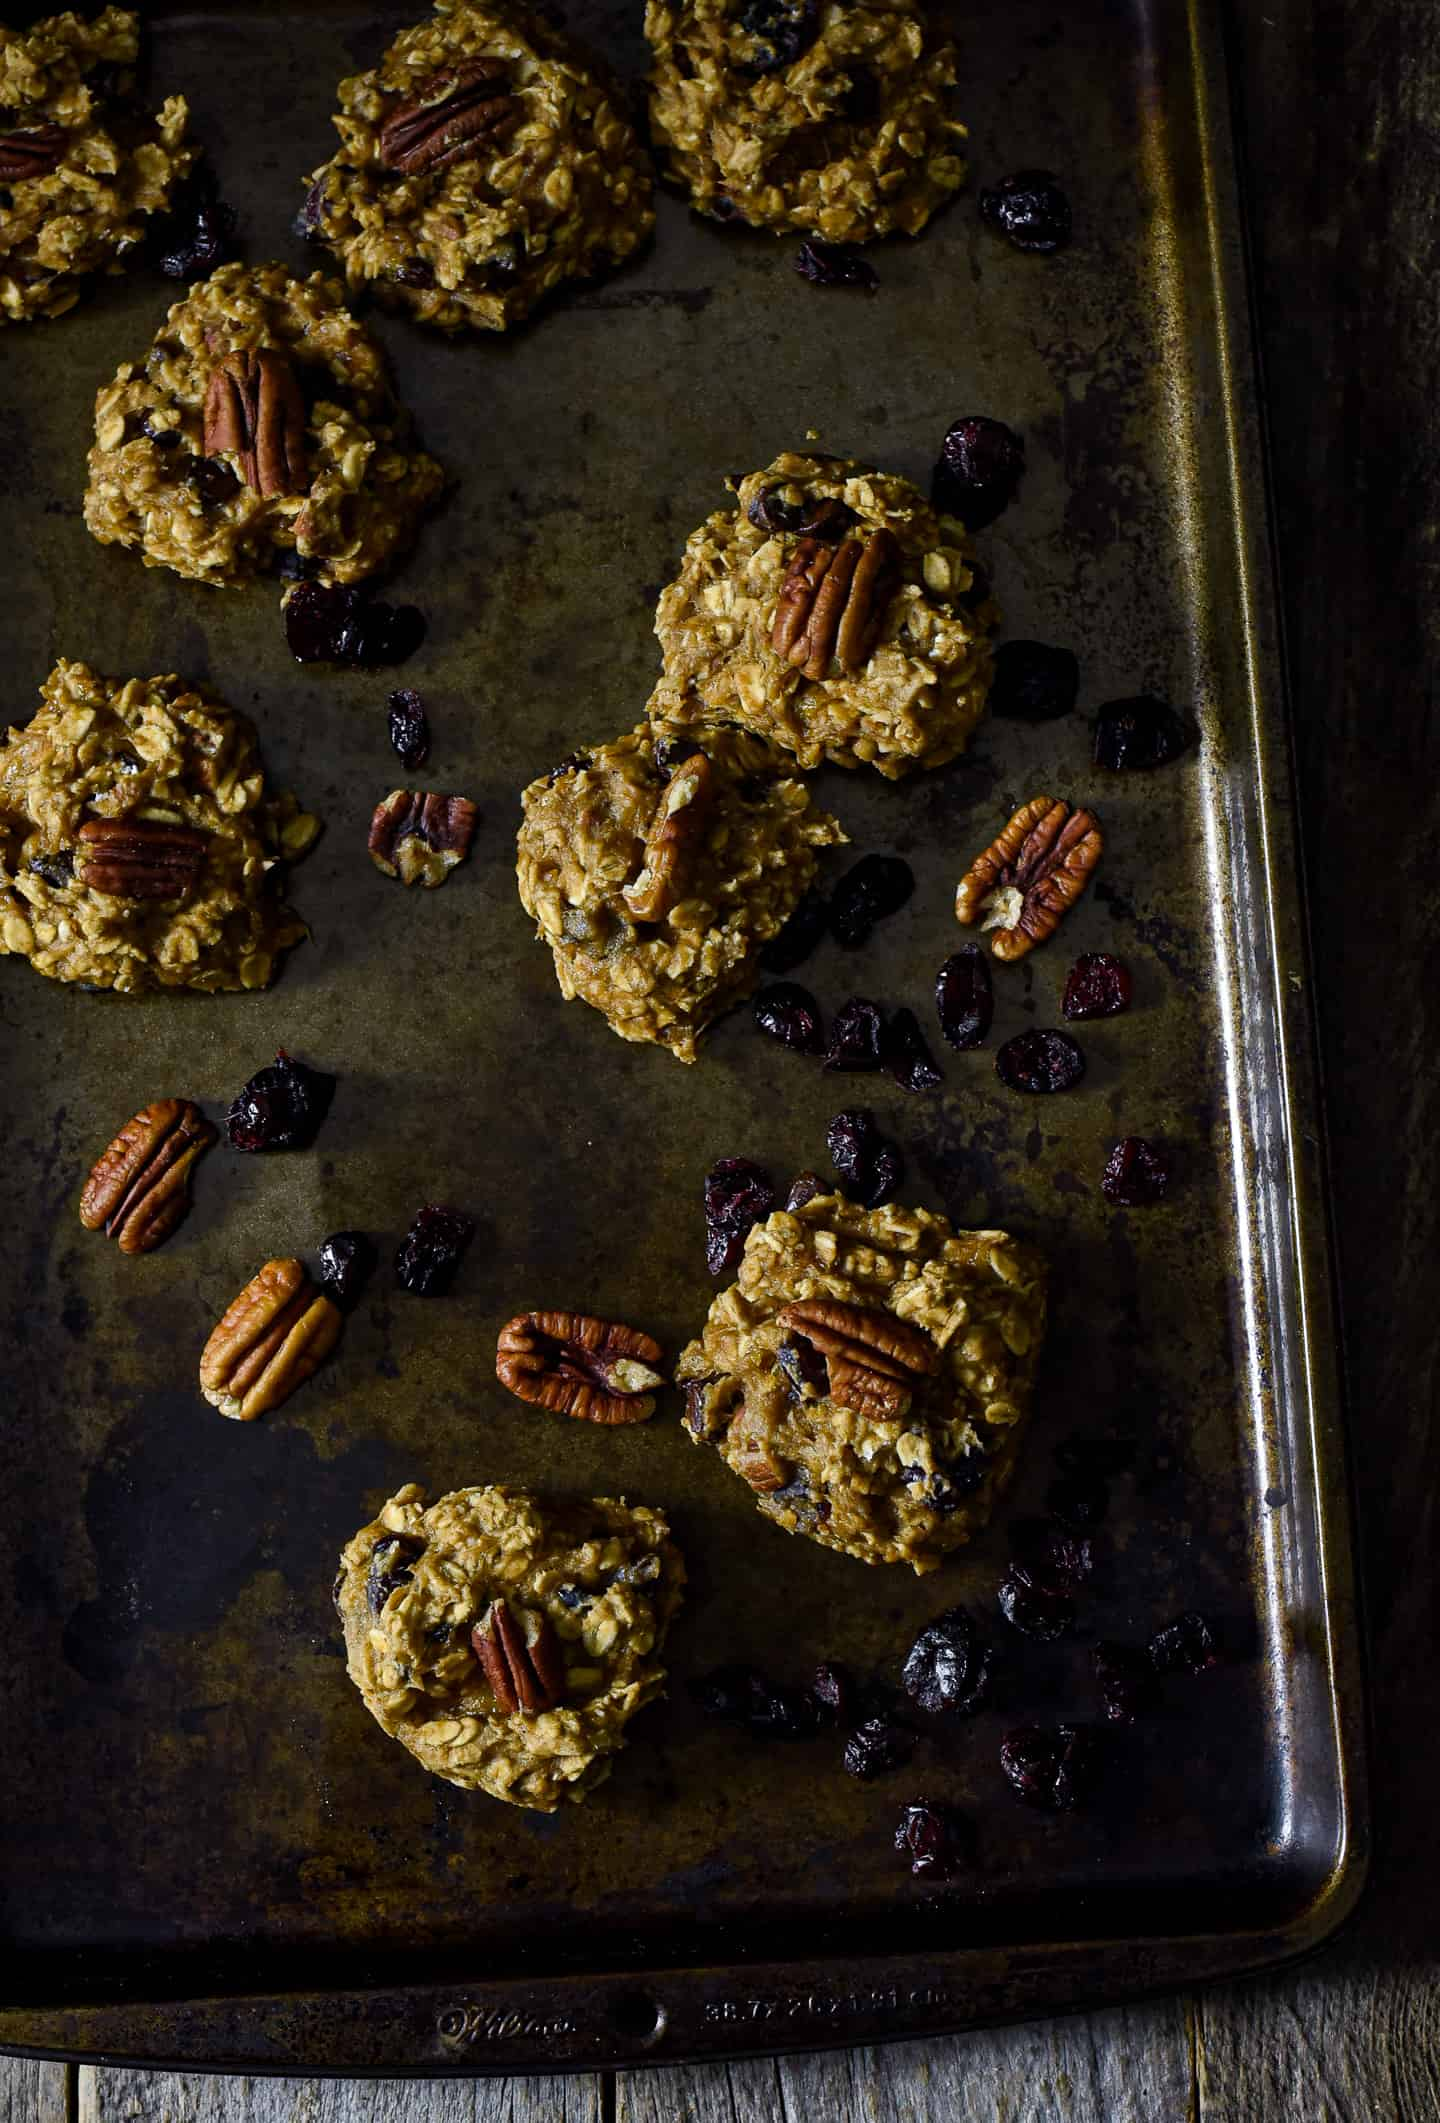 Gluten-Free Vegan Breakfast cookies are so easy to make, delicious, and healthy! They're made with natural wholesome plant-based ingredients and are completely oil-free. These cookies are sure to be a welcome addition to your morning routine.